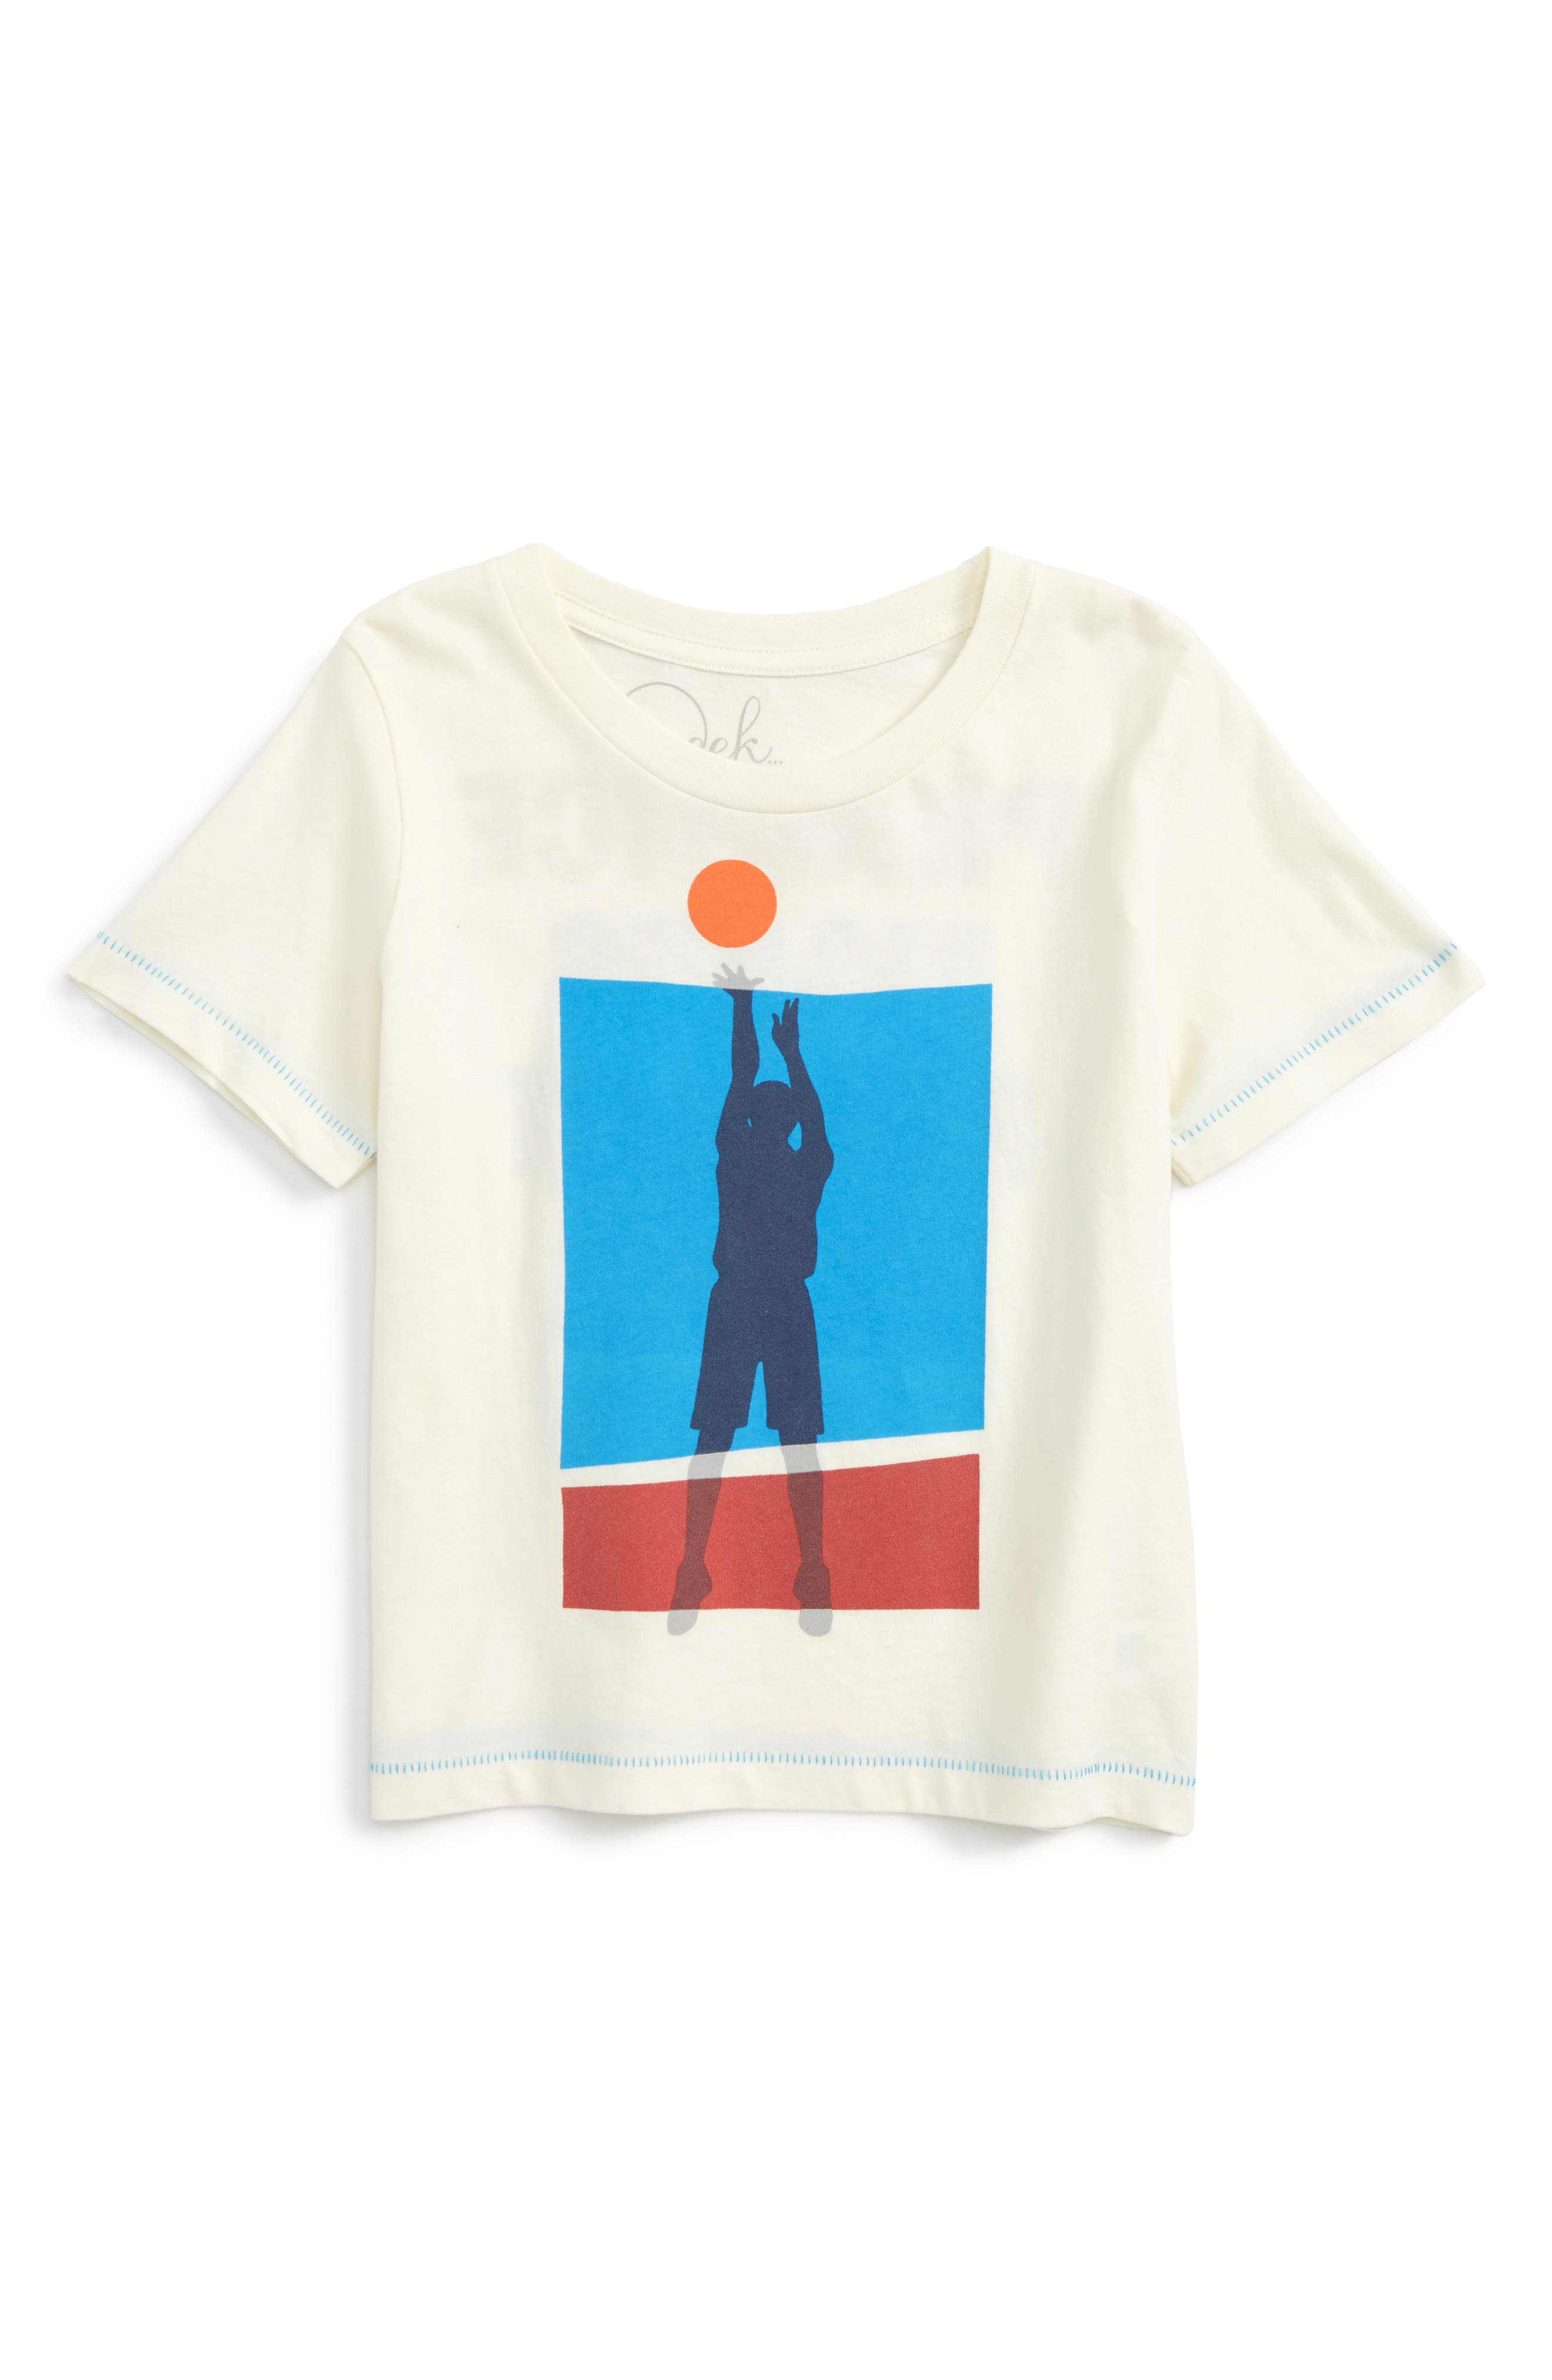 Main Image - Peek Basketball Practice T-Shirt (Toddler Boys, Little Boys & Big Boys)